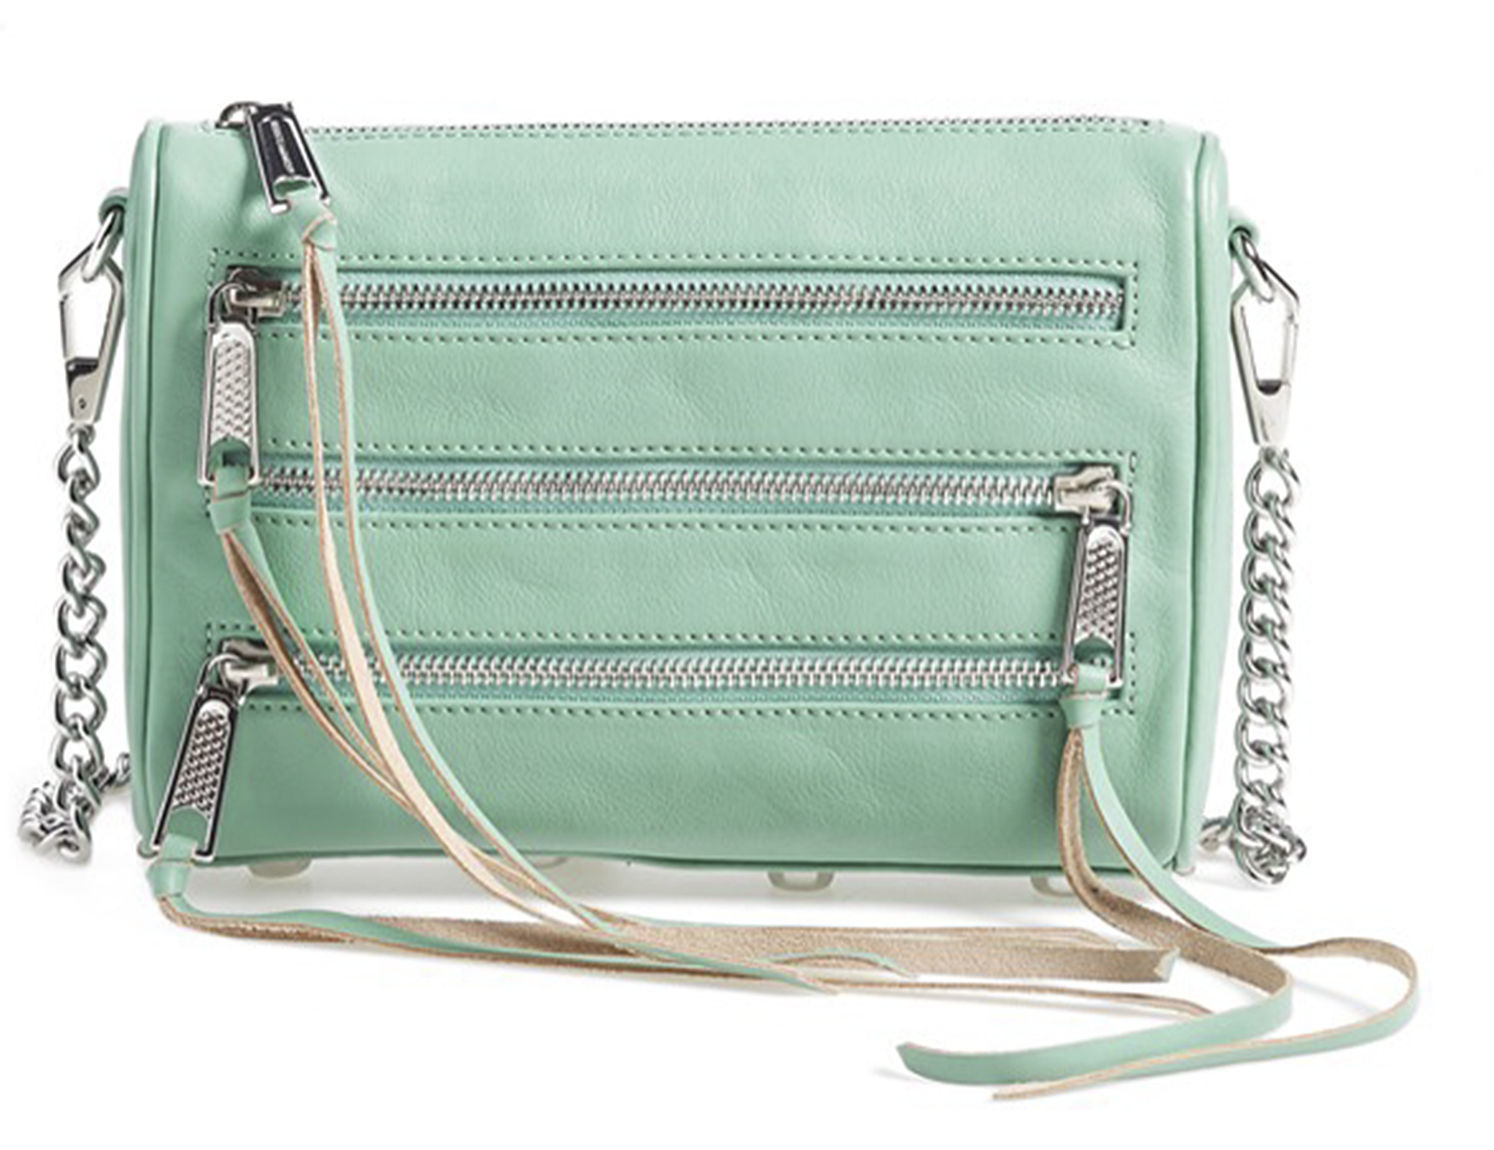 Primary image for Rebecca Minkoff Mini 5 Zip Sage Green Leather Crossbody Convertible Clutch Bag